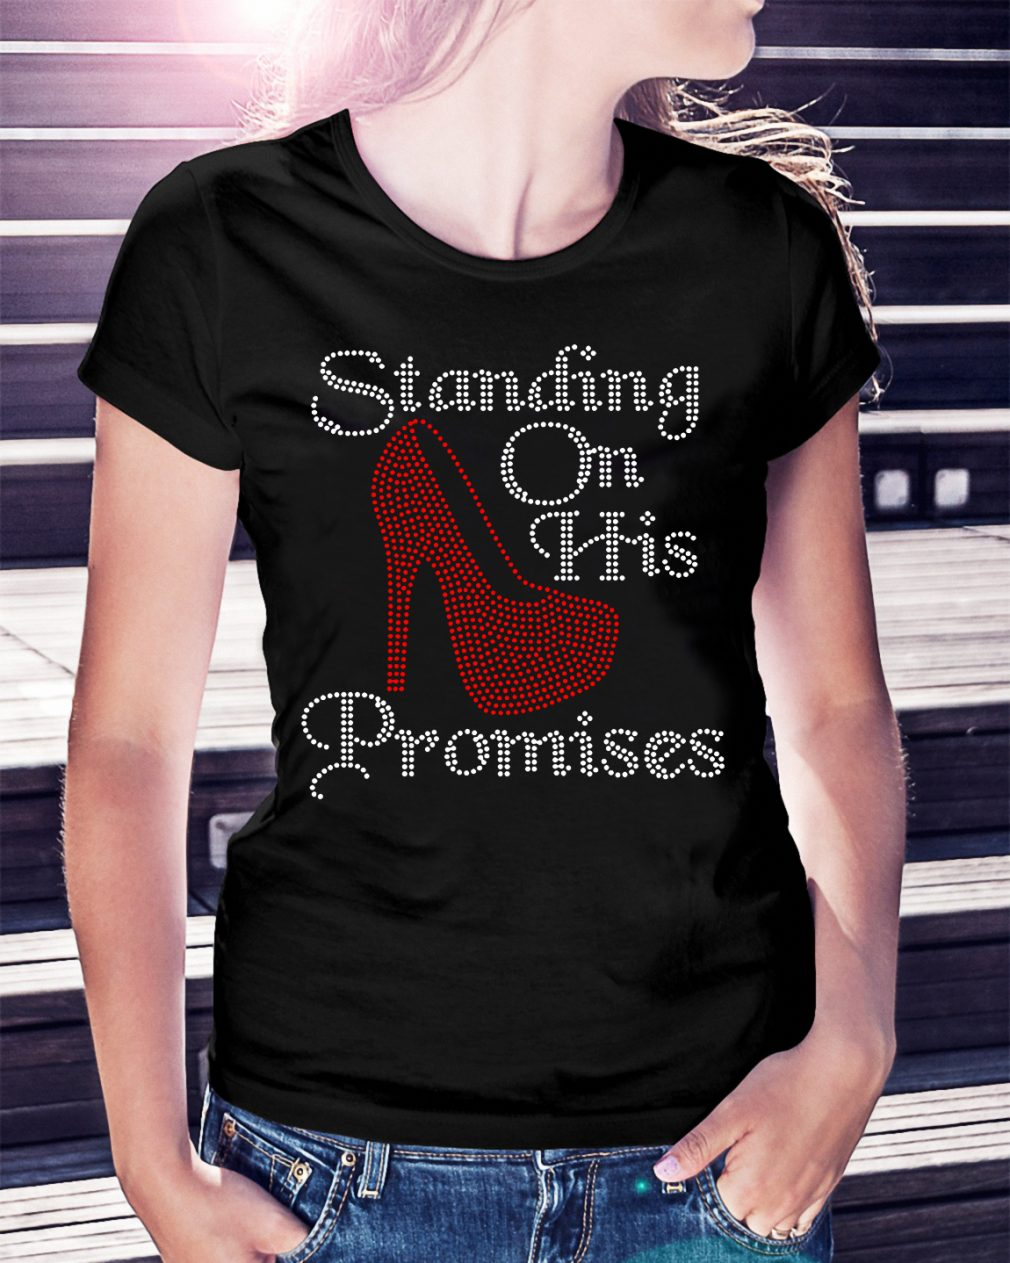 Standing on his promises shirt